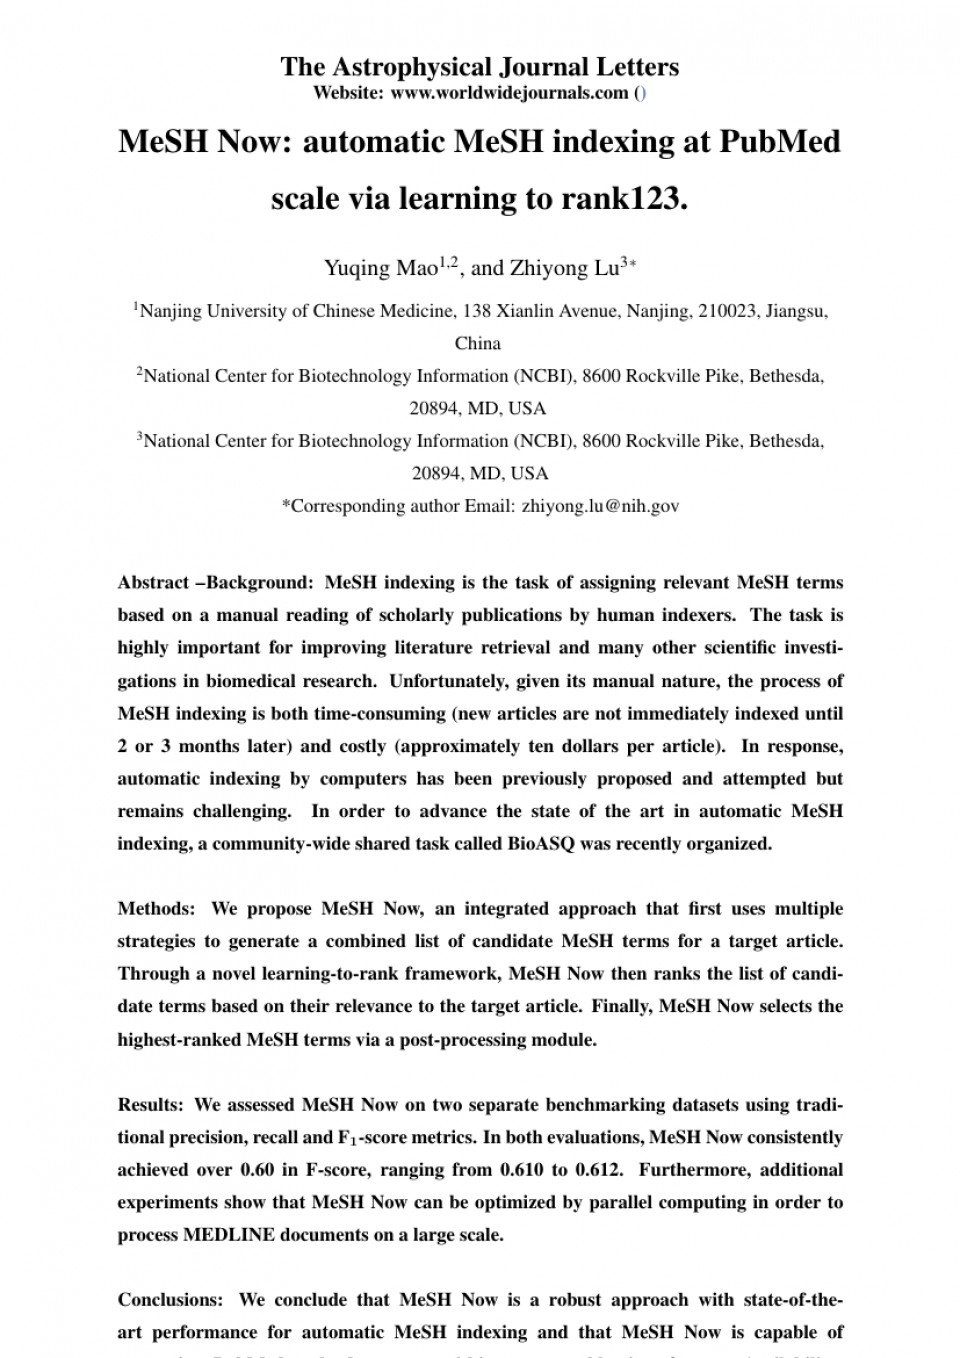 006 Research Paper Order Of Scientific Top Conclusion Tense 960